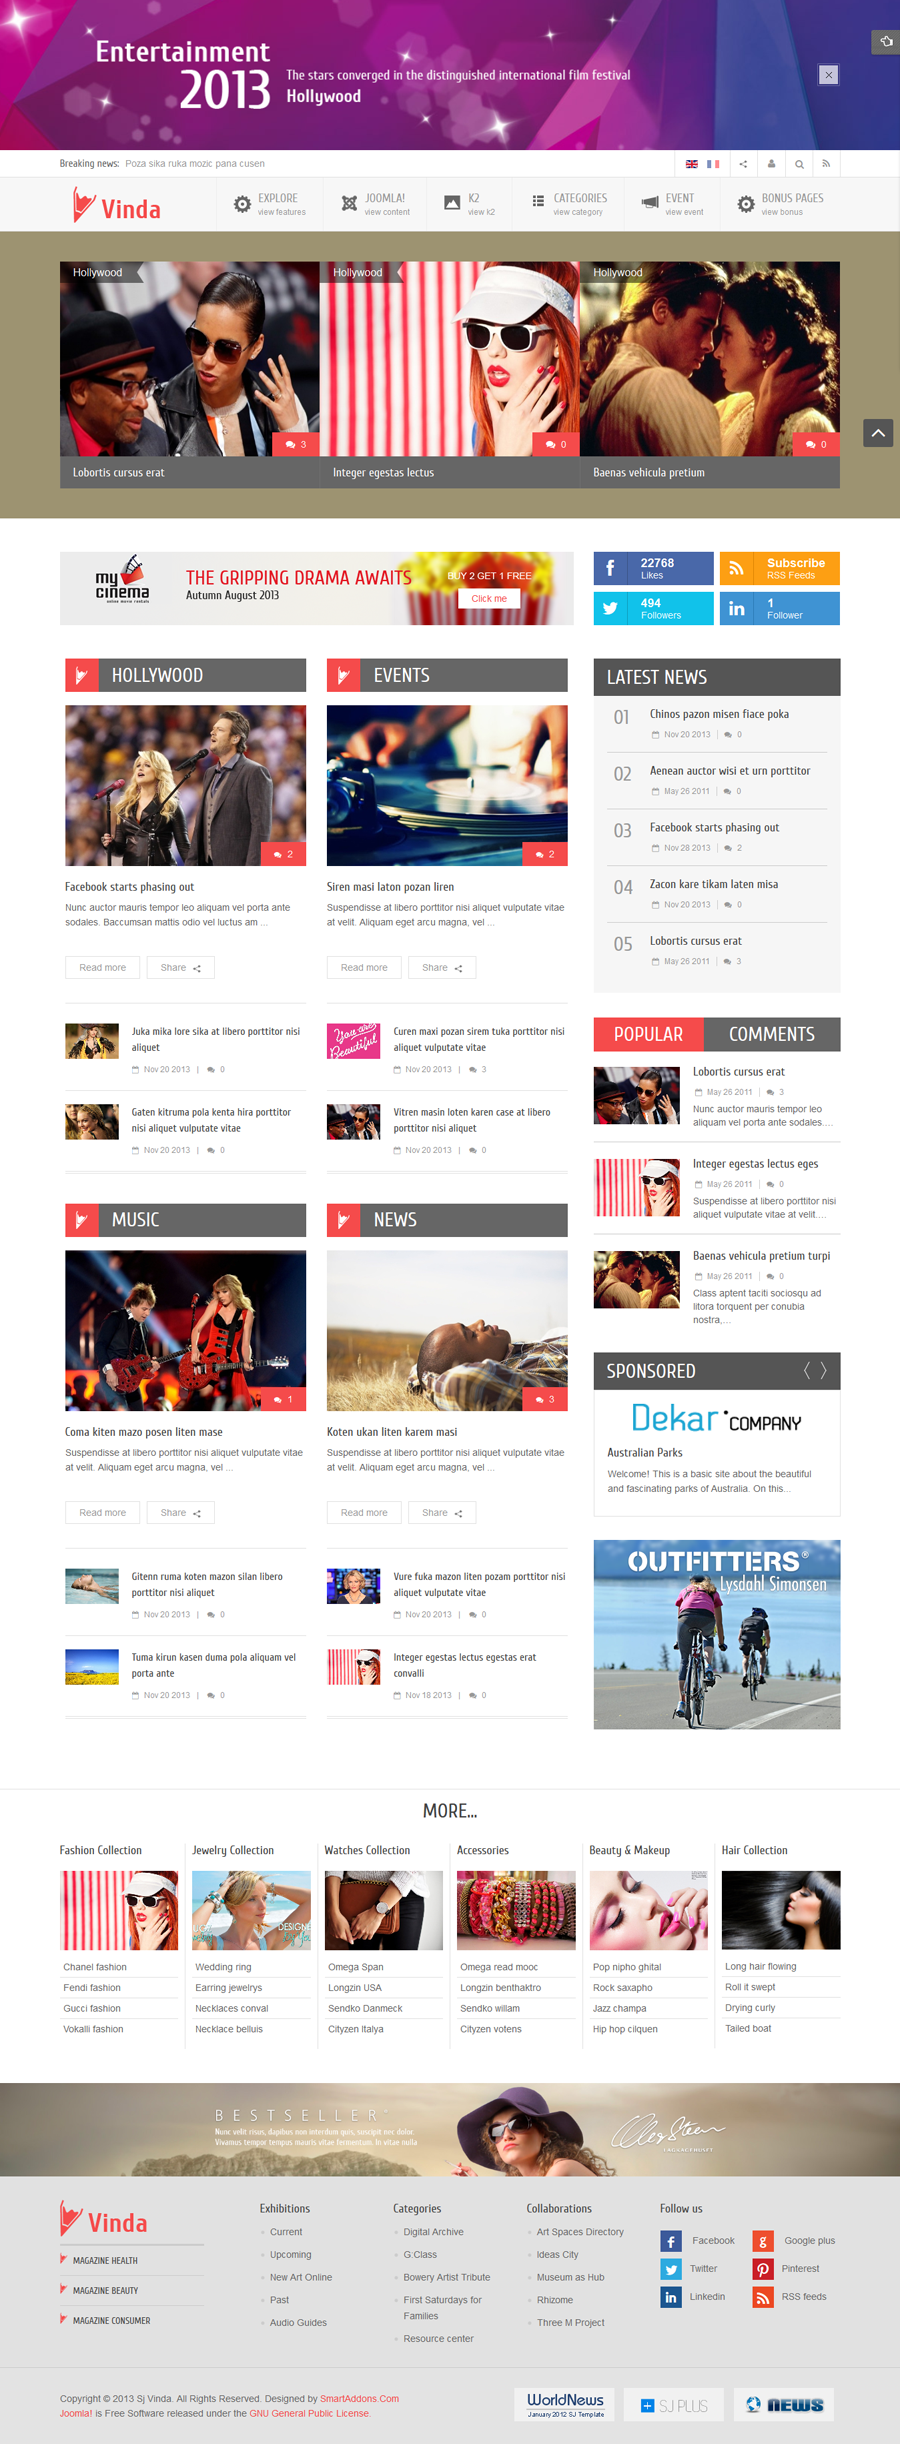 SJ Vinda - Free Joomla Entertainment Template - 01homepage1.png